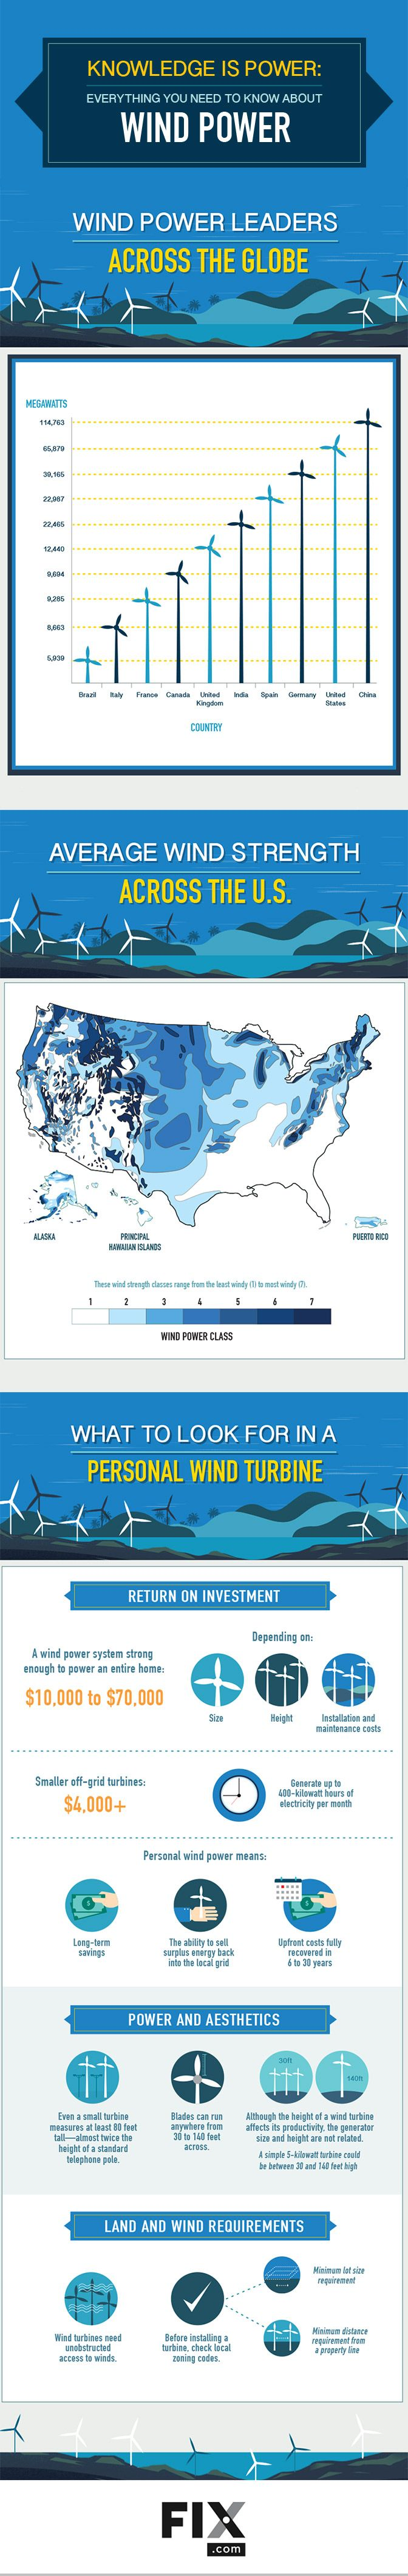 Knowledge Is Power Everything You Need to Know About Wind Power #infographic